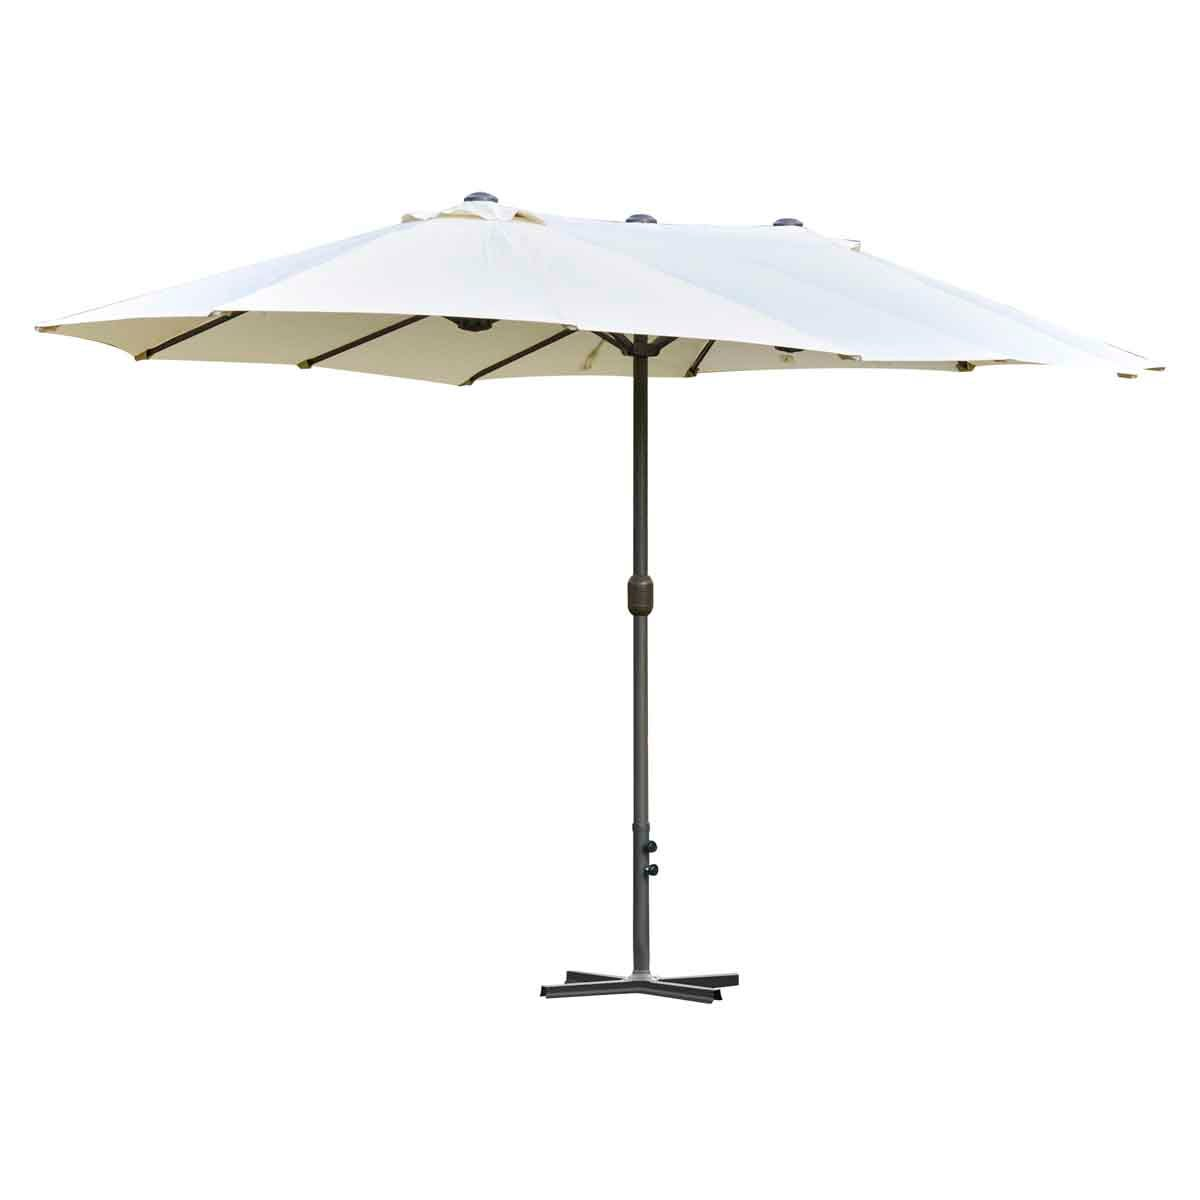 Outsunny 4.6m Double Canopy Parasol (base not included) - Cream White